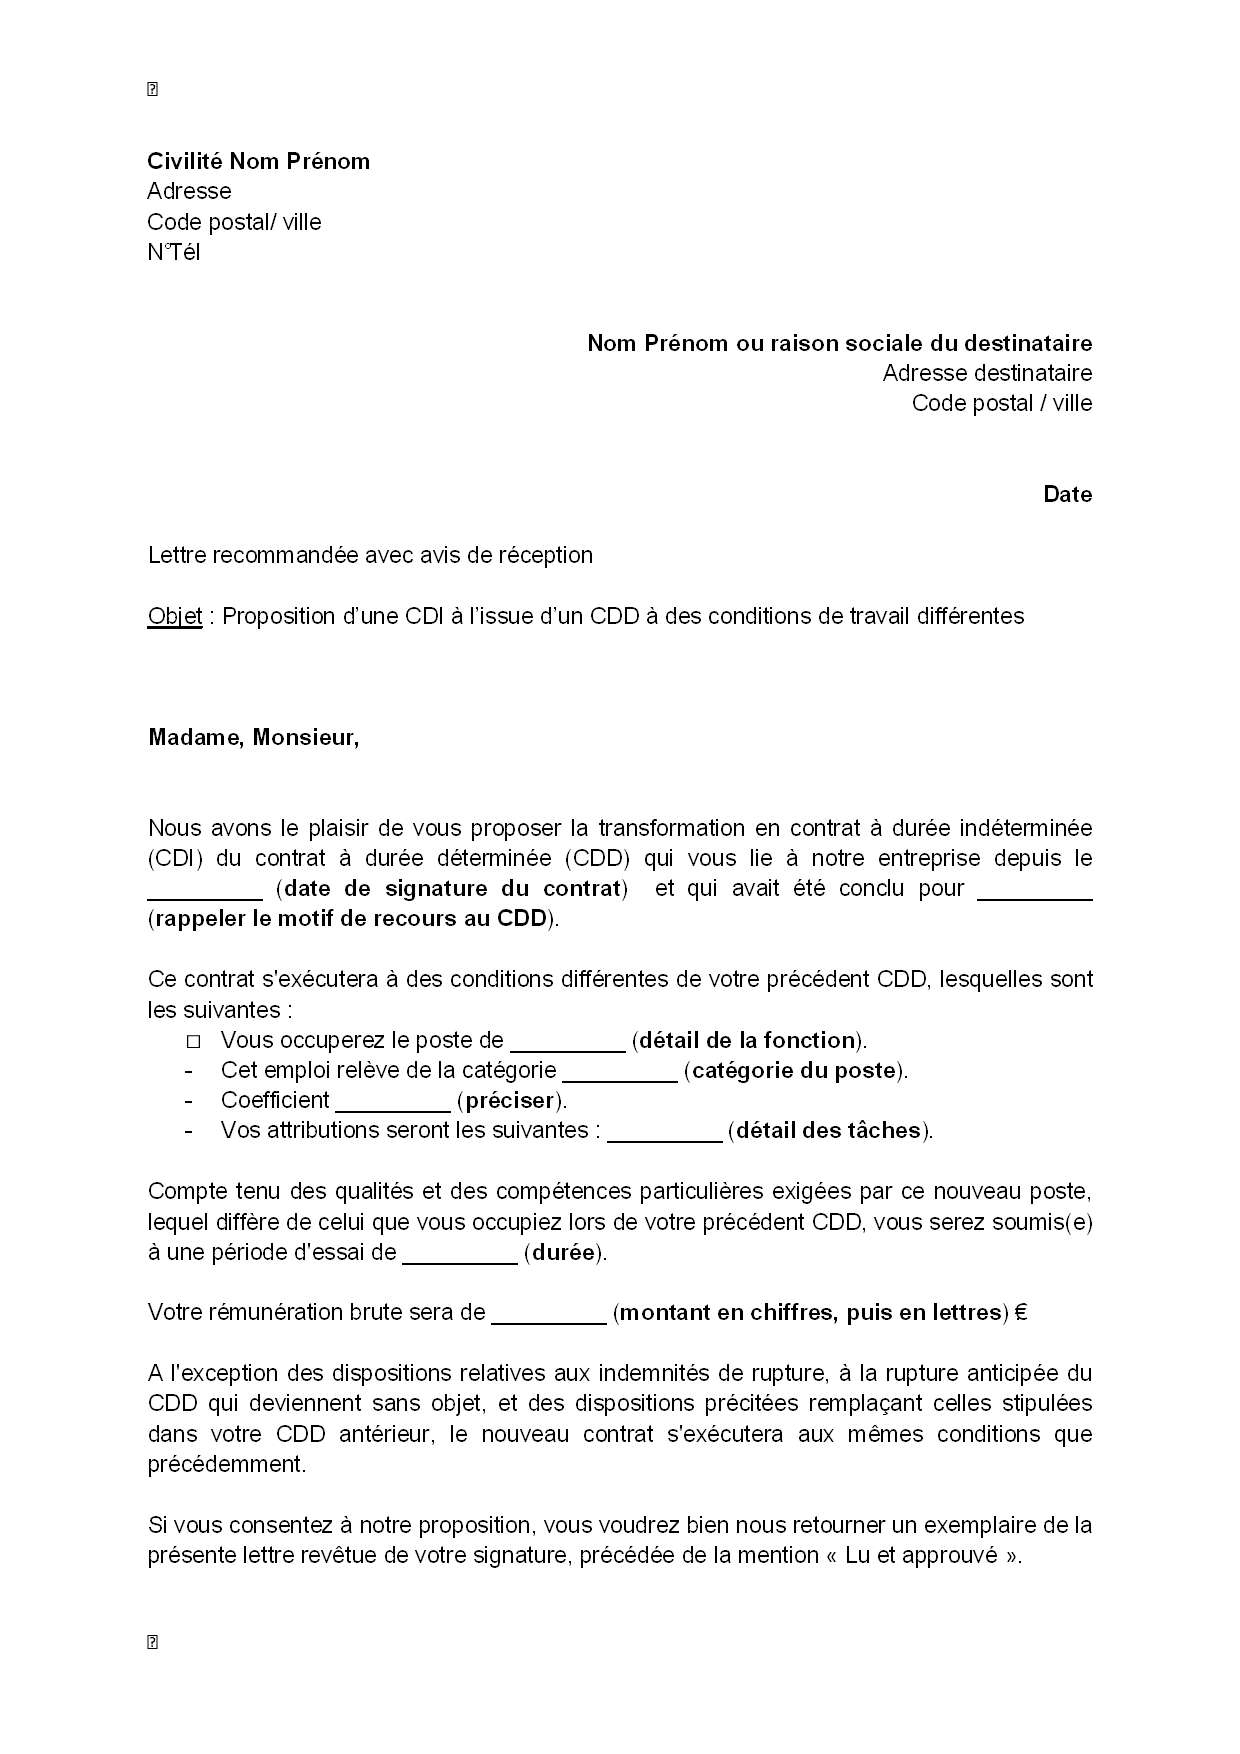 Lettre De Proposition D Un Cdi A L Issue D Un Cdd A Des Conditions